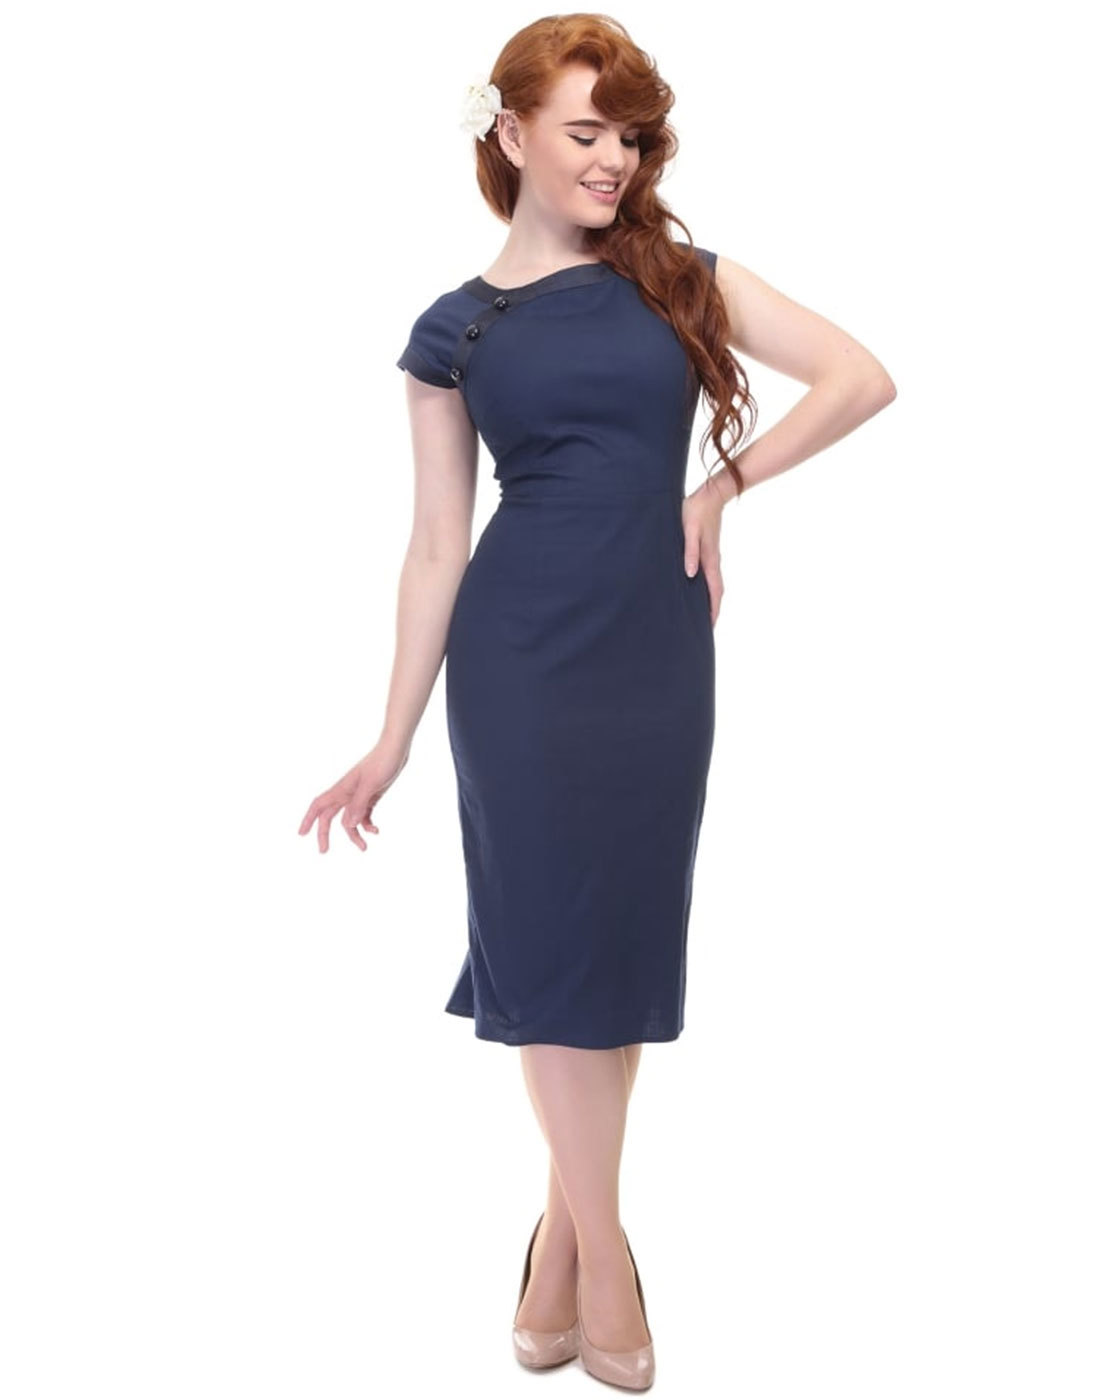 Nyoko COLLECTIF Retro 50s Vintage Fishtail Dress